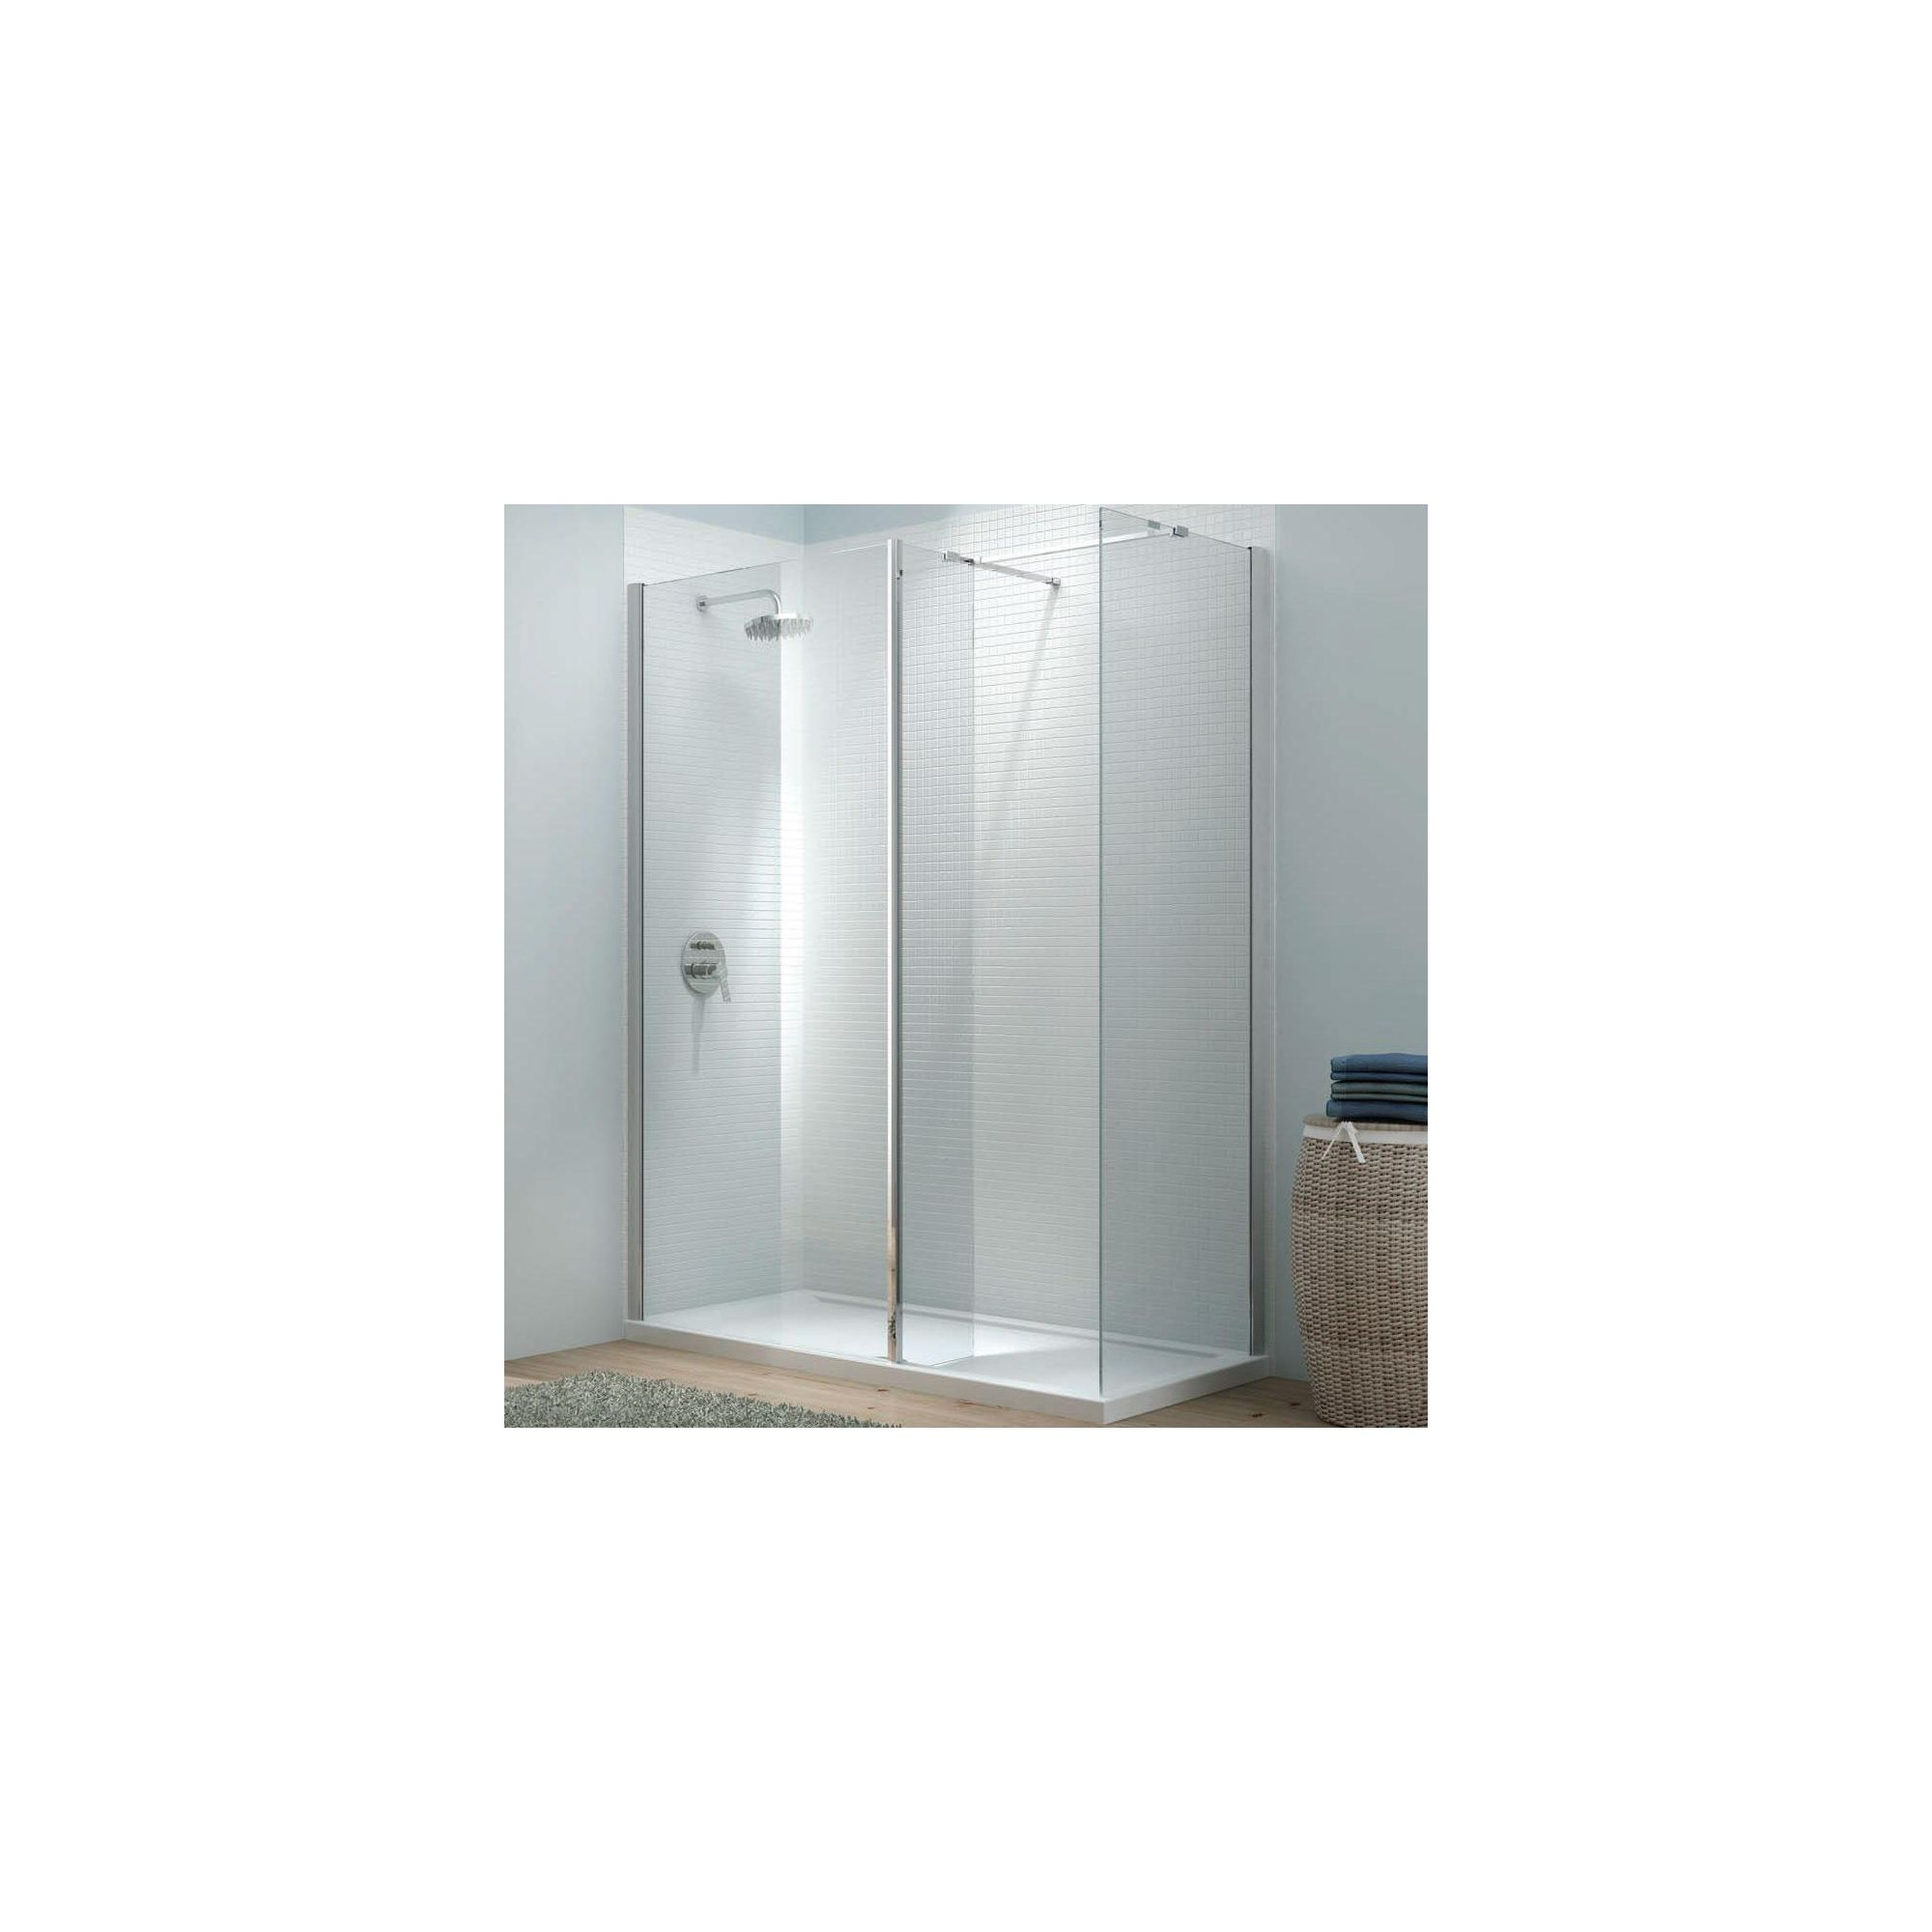 Merlyn Vivid Eight Cube Corner Walk-In Shower Enclosure, 1400mm x 900mm, Low Profile Tray, 8mm Glass at Tesco Direct